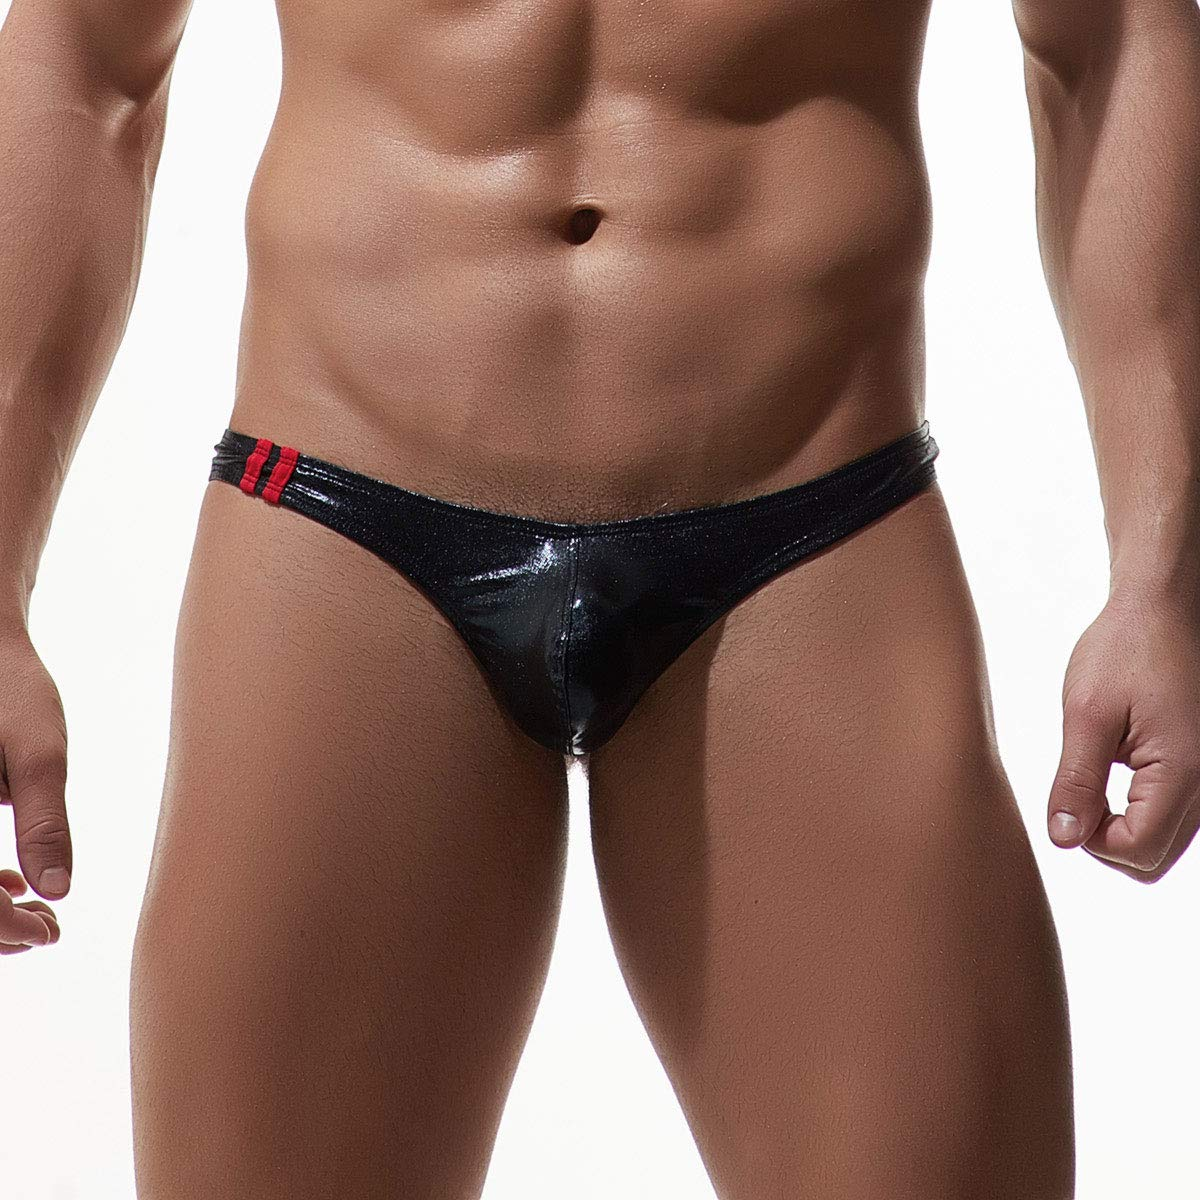 ElsaYX Mens Low Rise Faux Leather Underwear